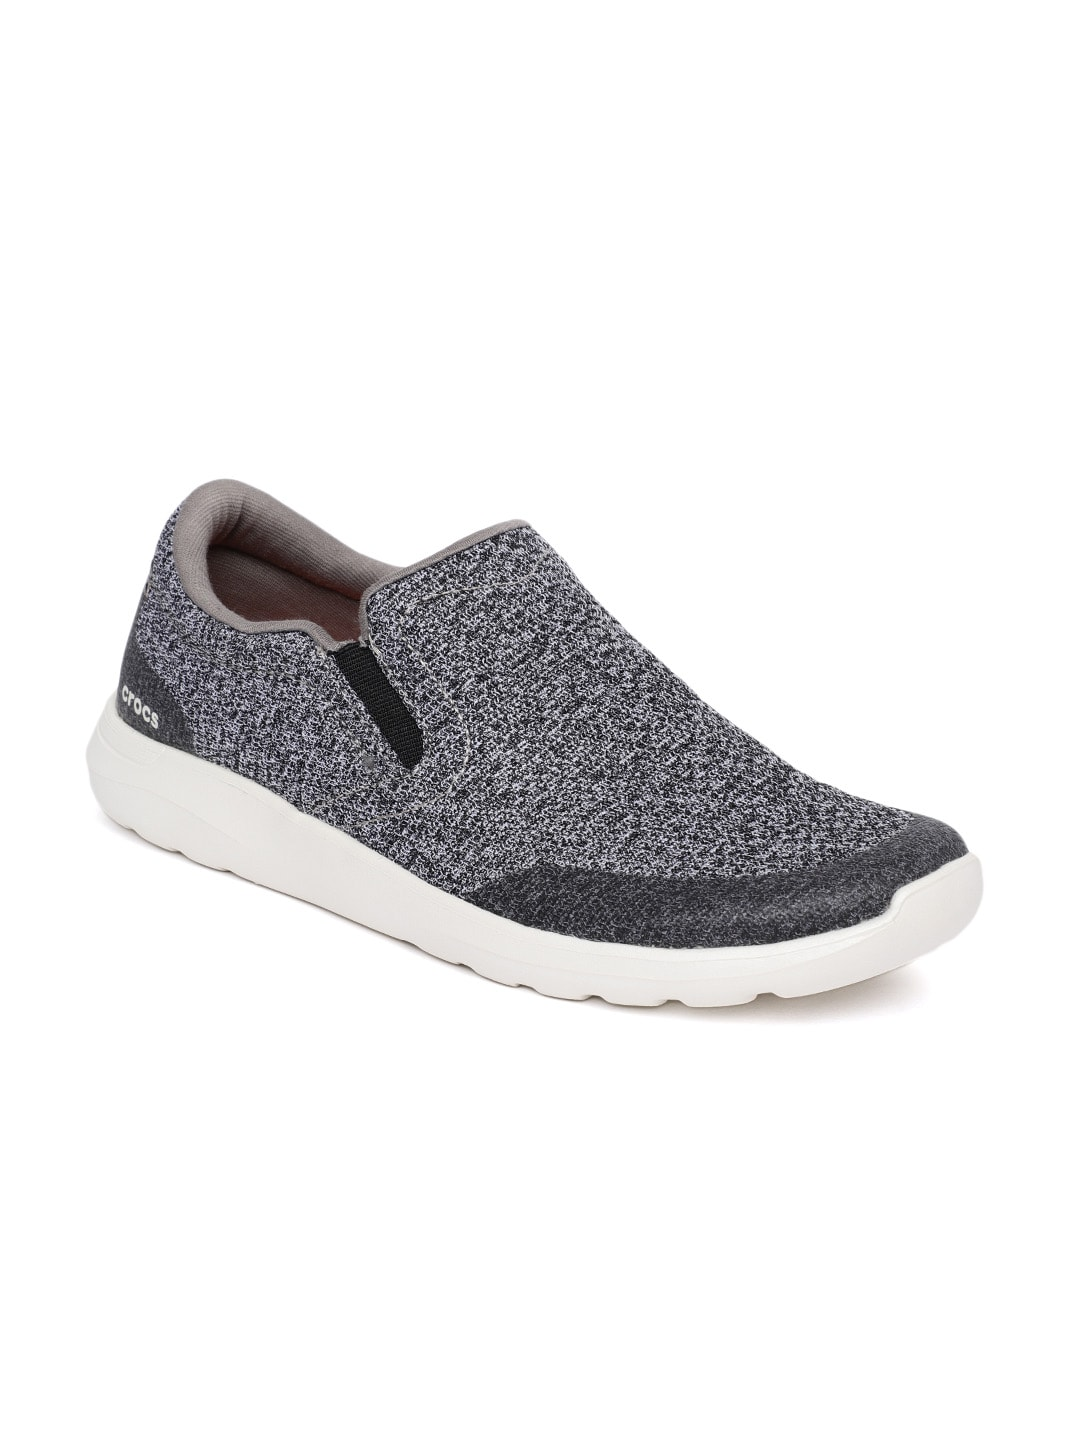 0a0c7b81e645 Crocs Grey Shoes - Buy Crocs Grey Shoes online in India